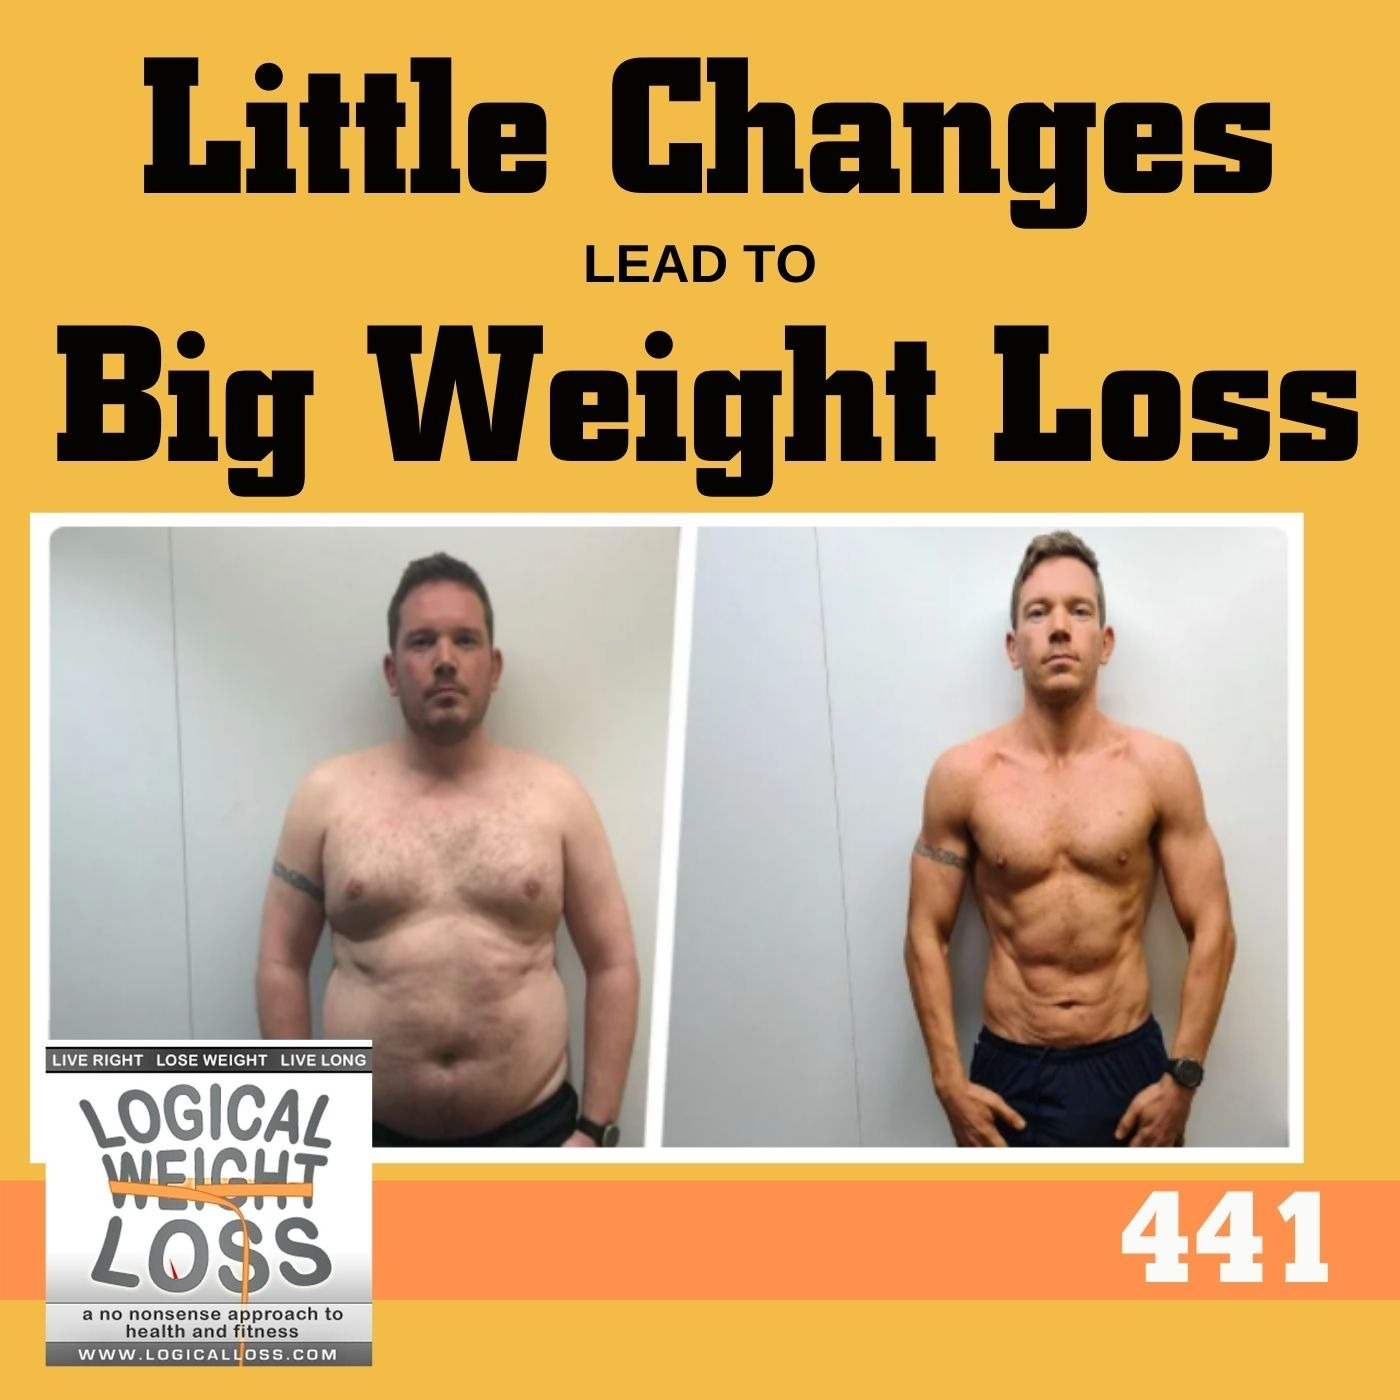 Little Changes Lead To Big Weight Loss